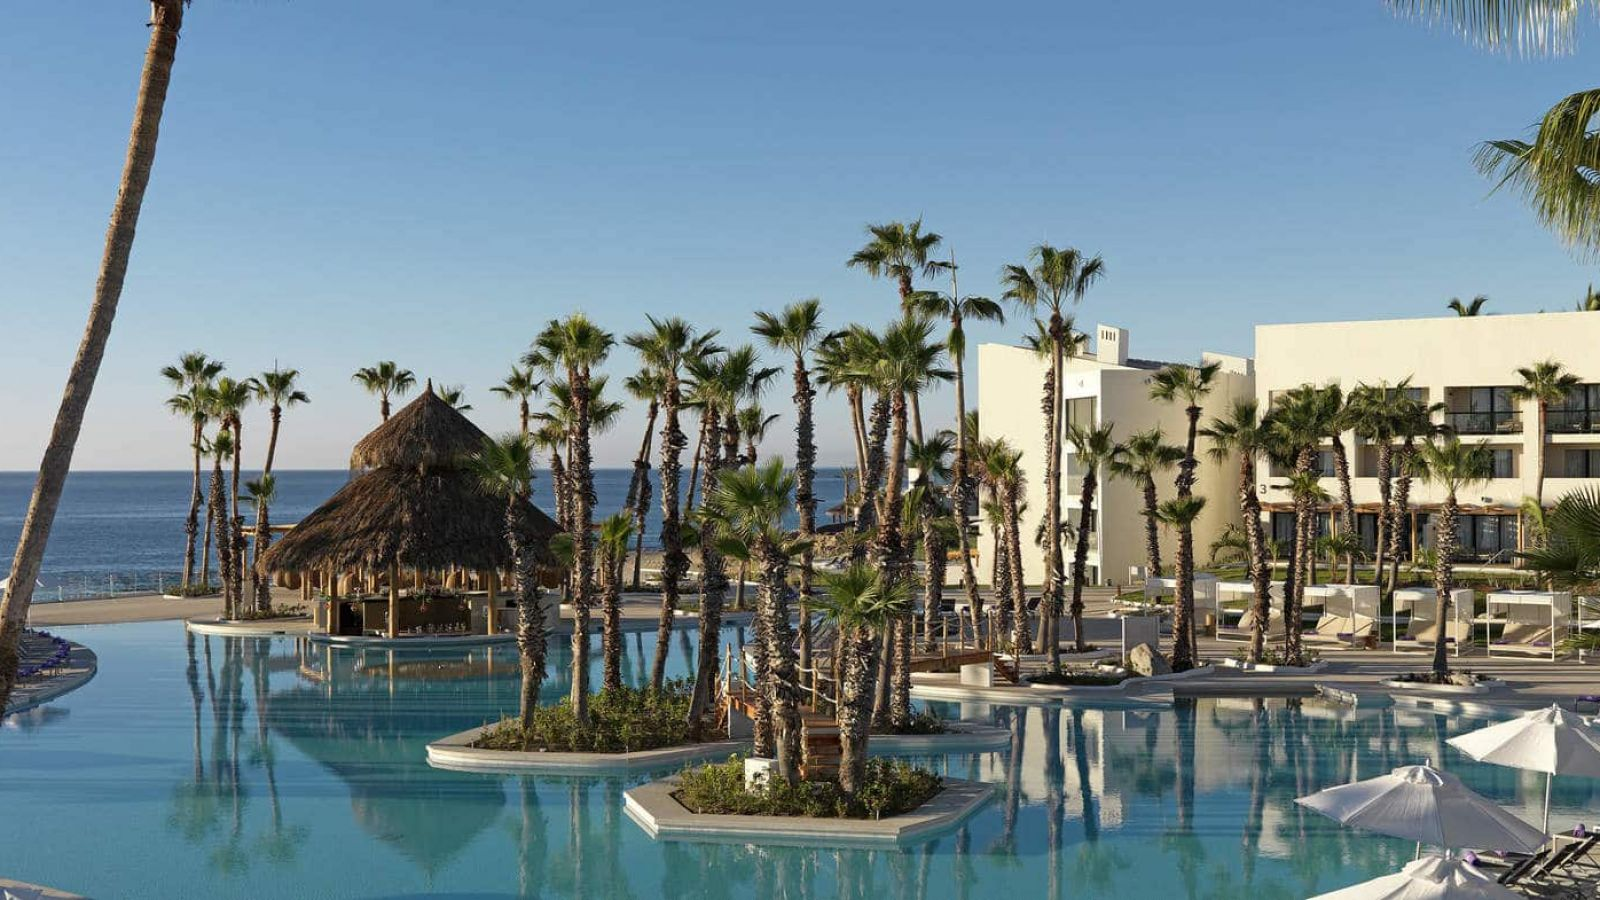 Paradisus Los Cabos is a luxury all inclusive resort